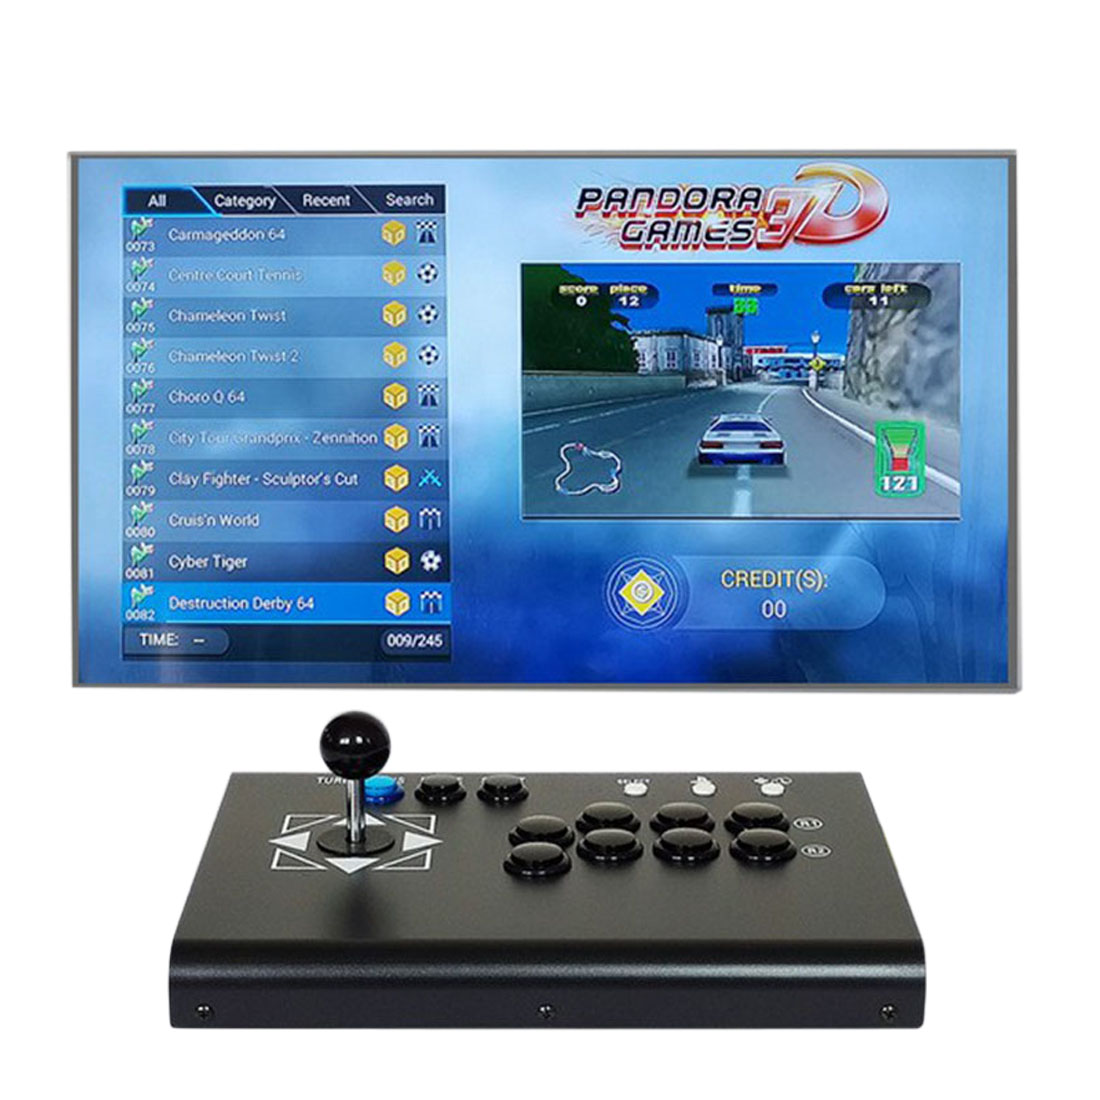 4018 Games 3D Pandora Games Console Fighting Game Machine (Host Console)